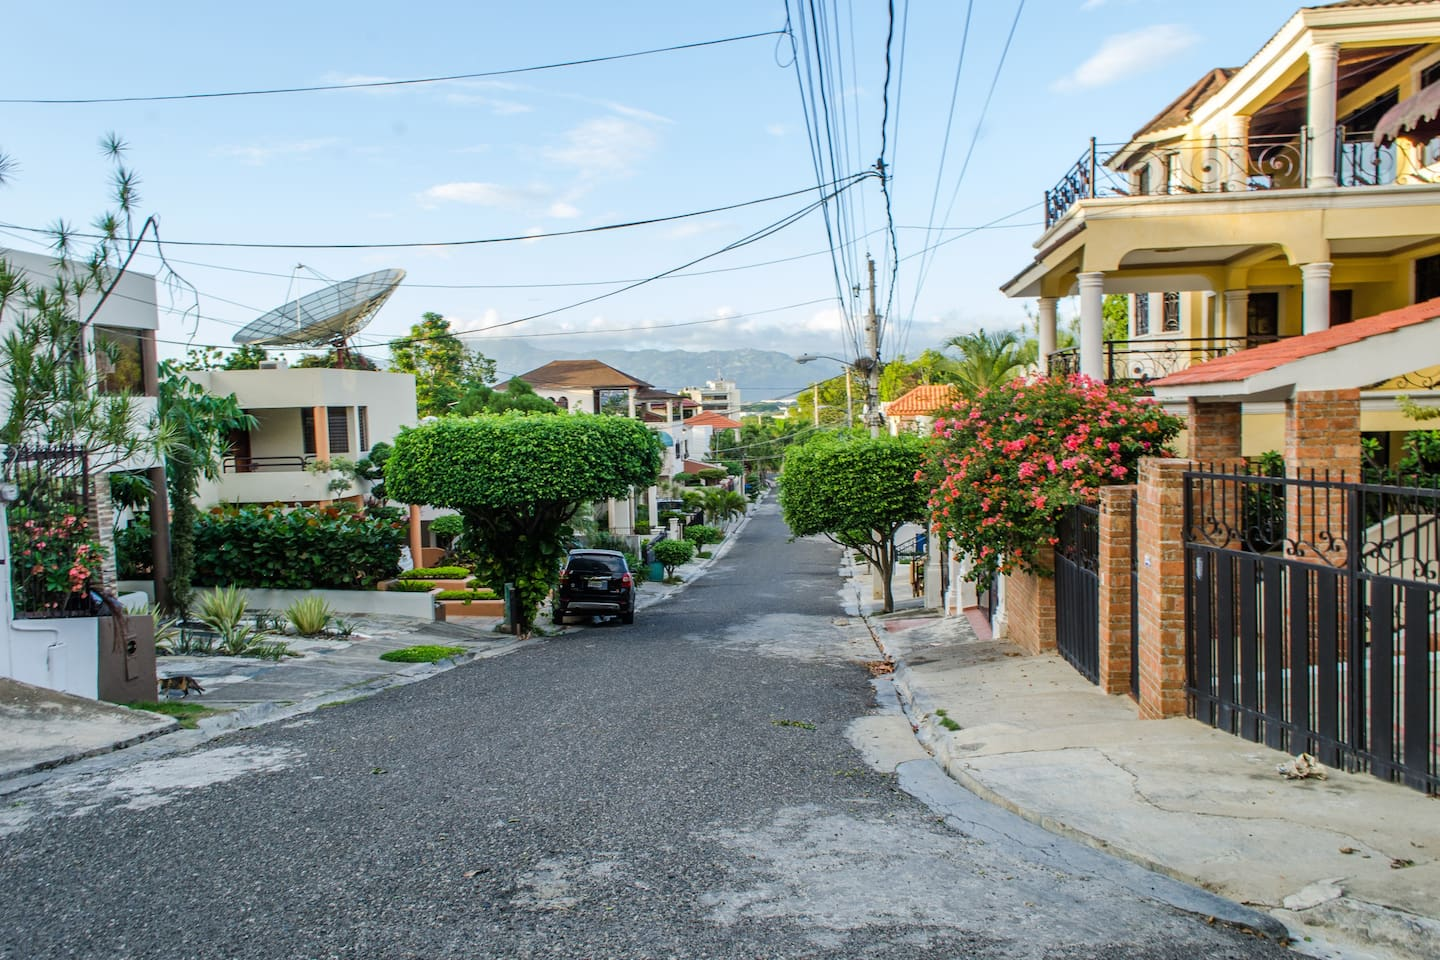 Street View from the house - downhill.